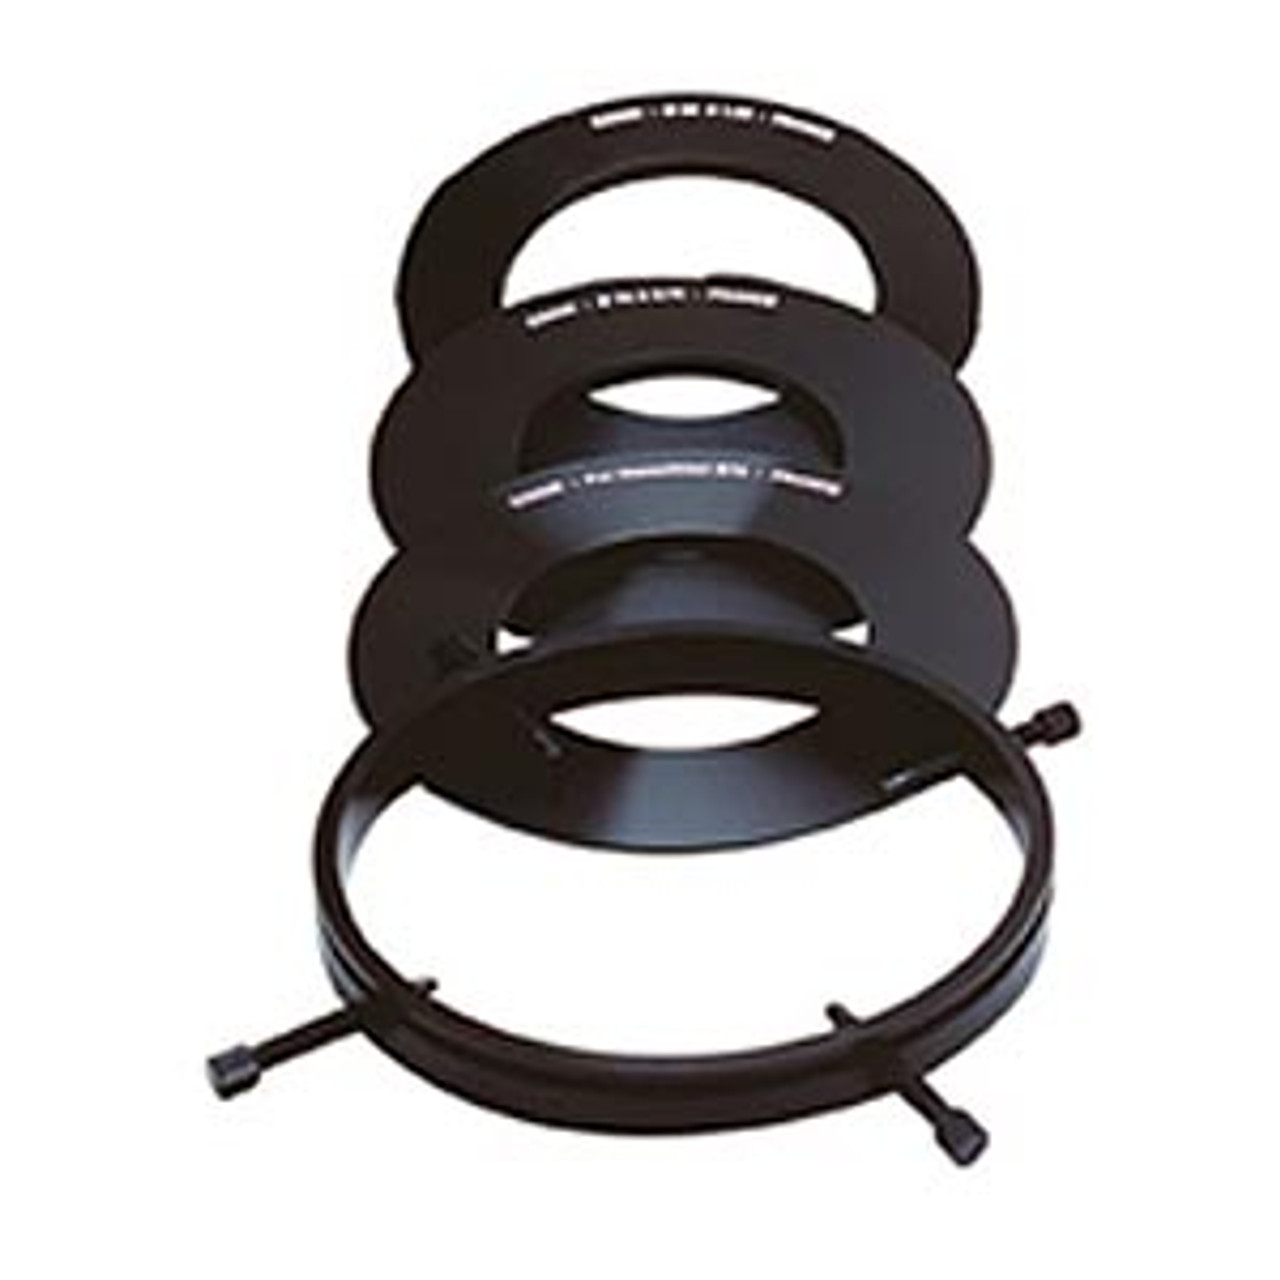 Cokin P458 58mm Adapter Ring